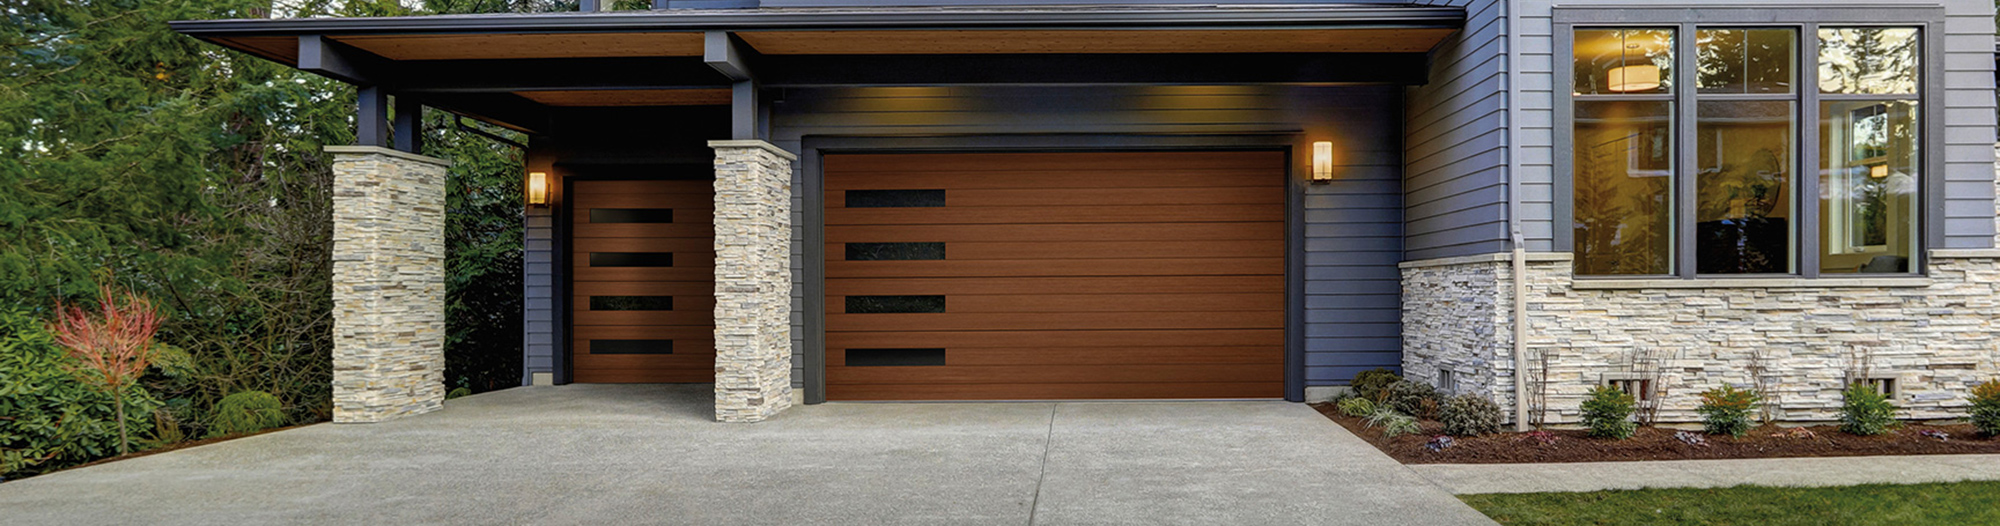 Maple Garage Doors Garage Doors Nj Garage Door Repair Nj Hunter Door Blog